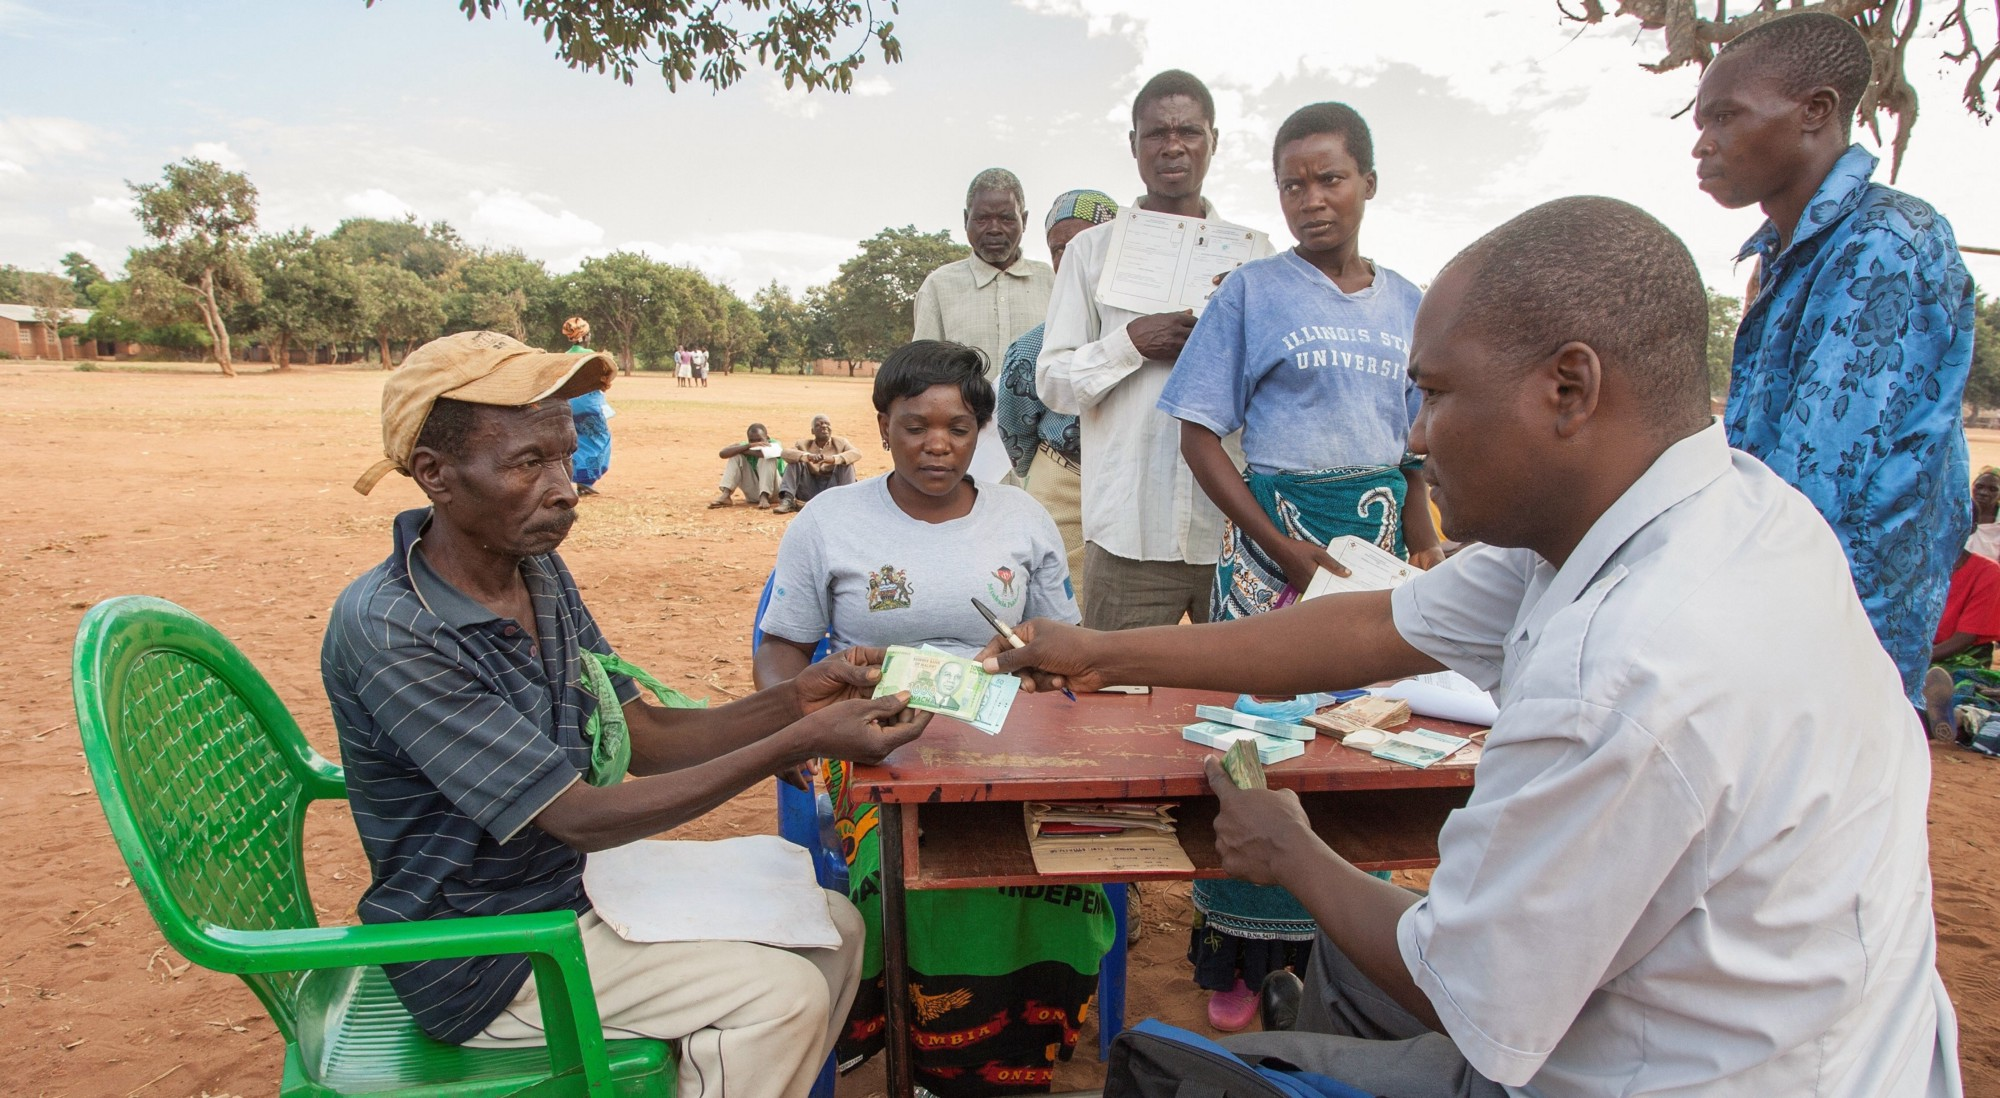 My time working on cash transfers for the poorest families in Malawi